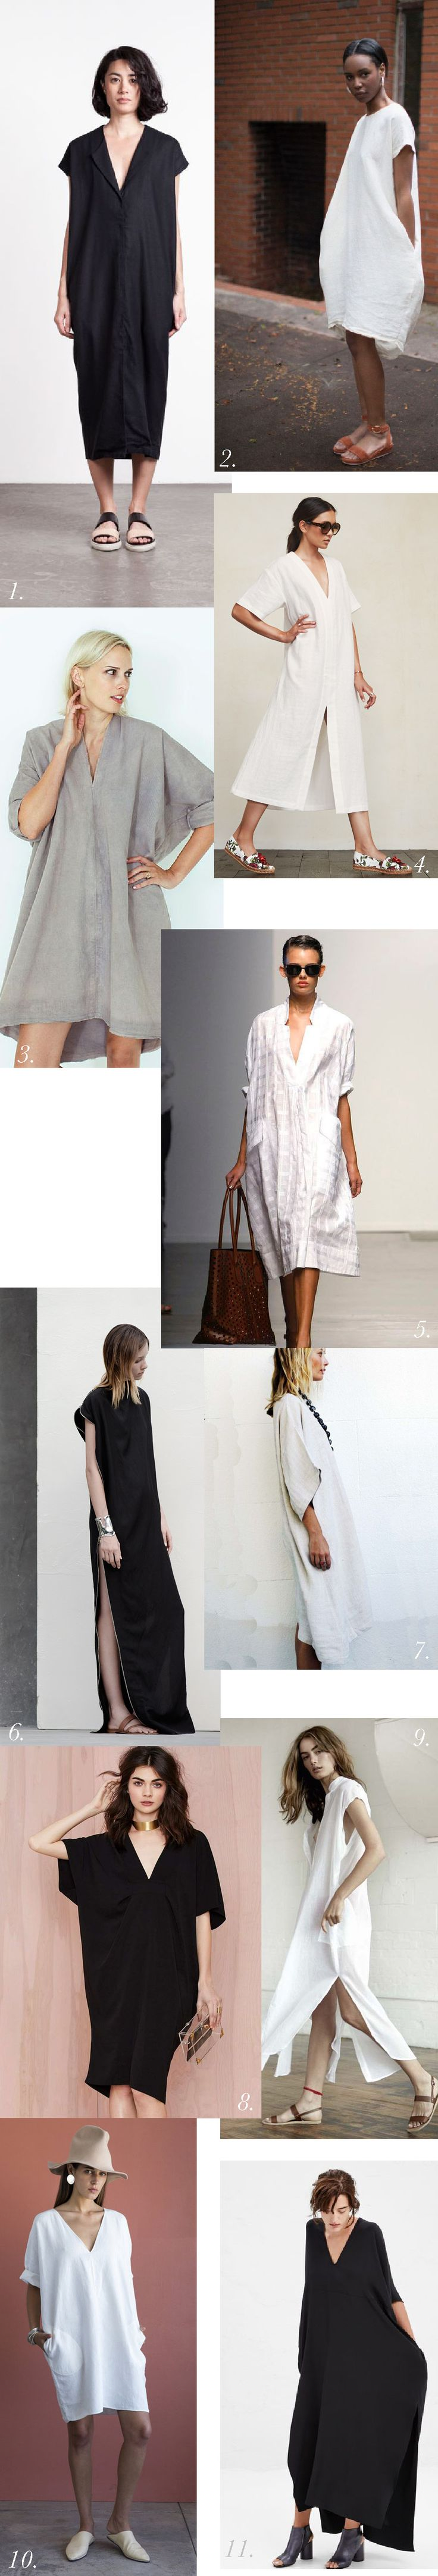 Minimalist caftans in linen, silk and cotton https://closetcasepatterns.com/the-charlie-caftan-pattern-inspiration-styling/